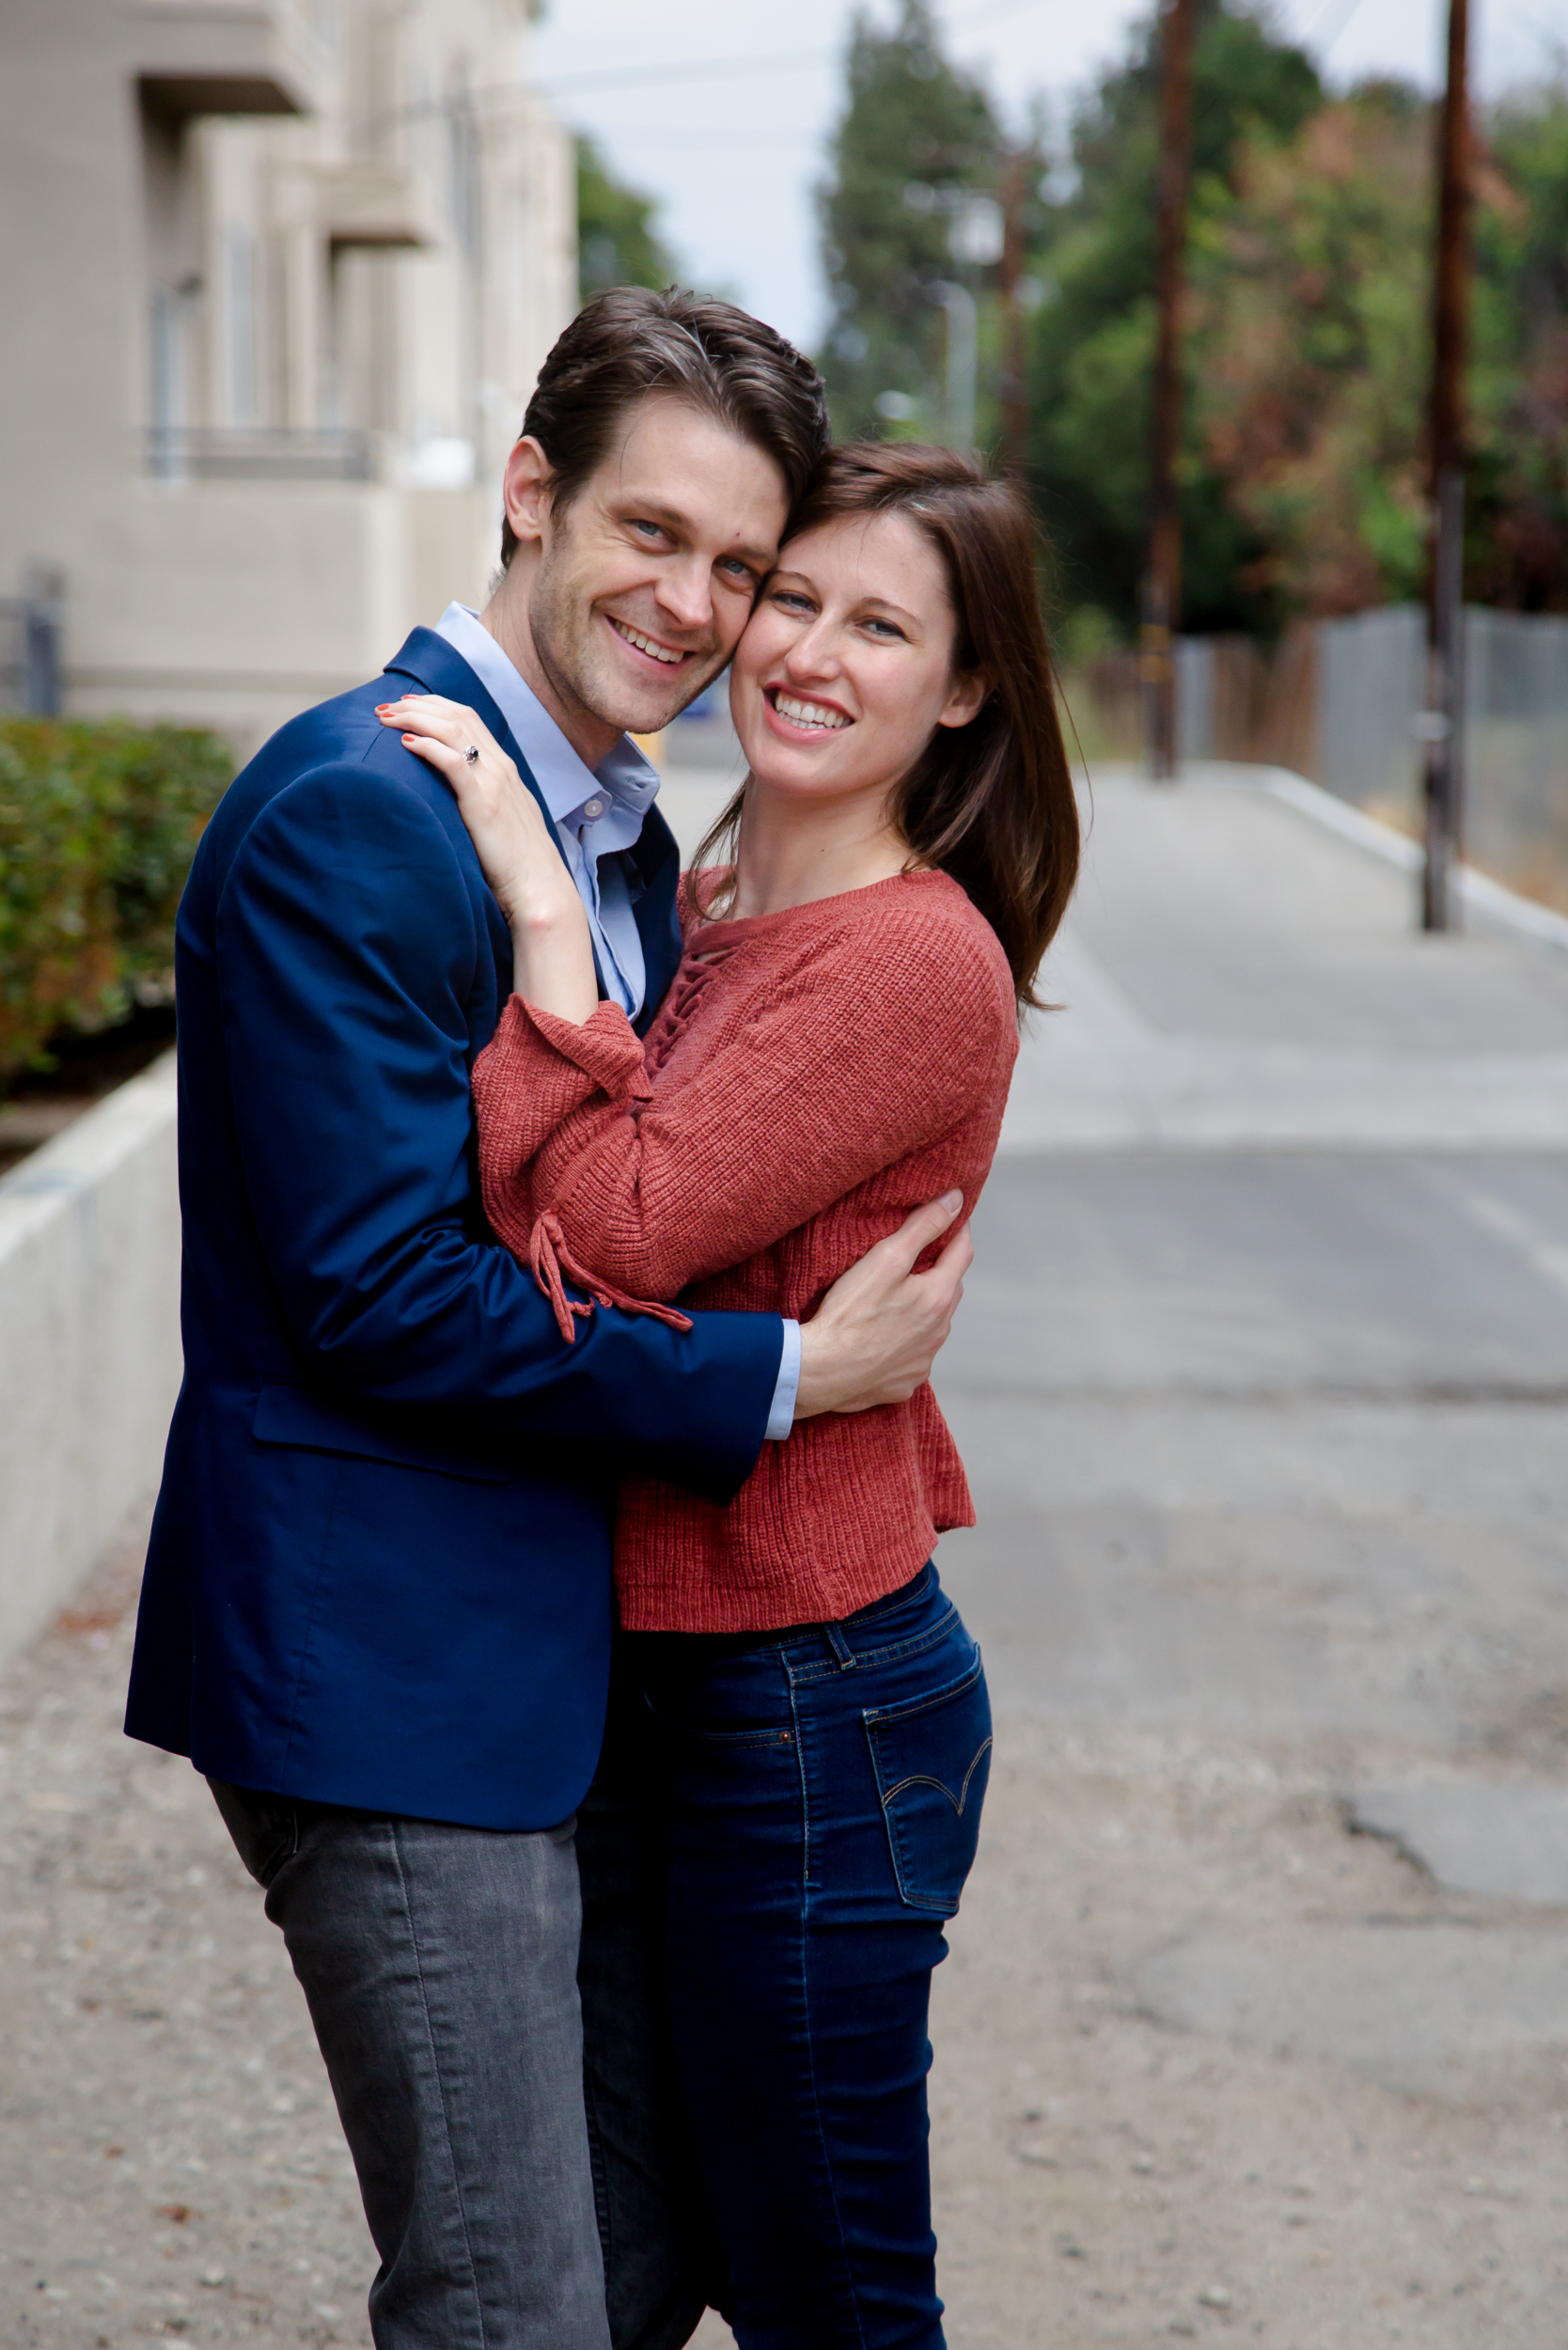 los_angeles_engagement_wedding_photographer_chicago_photographer-17.jpg